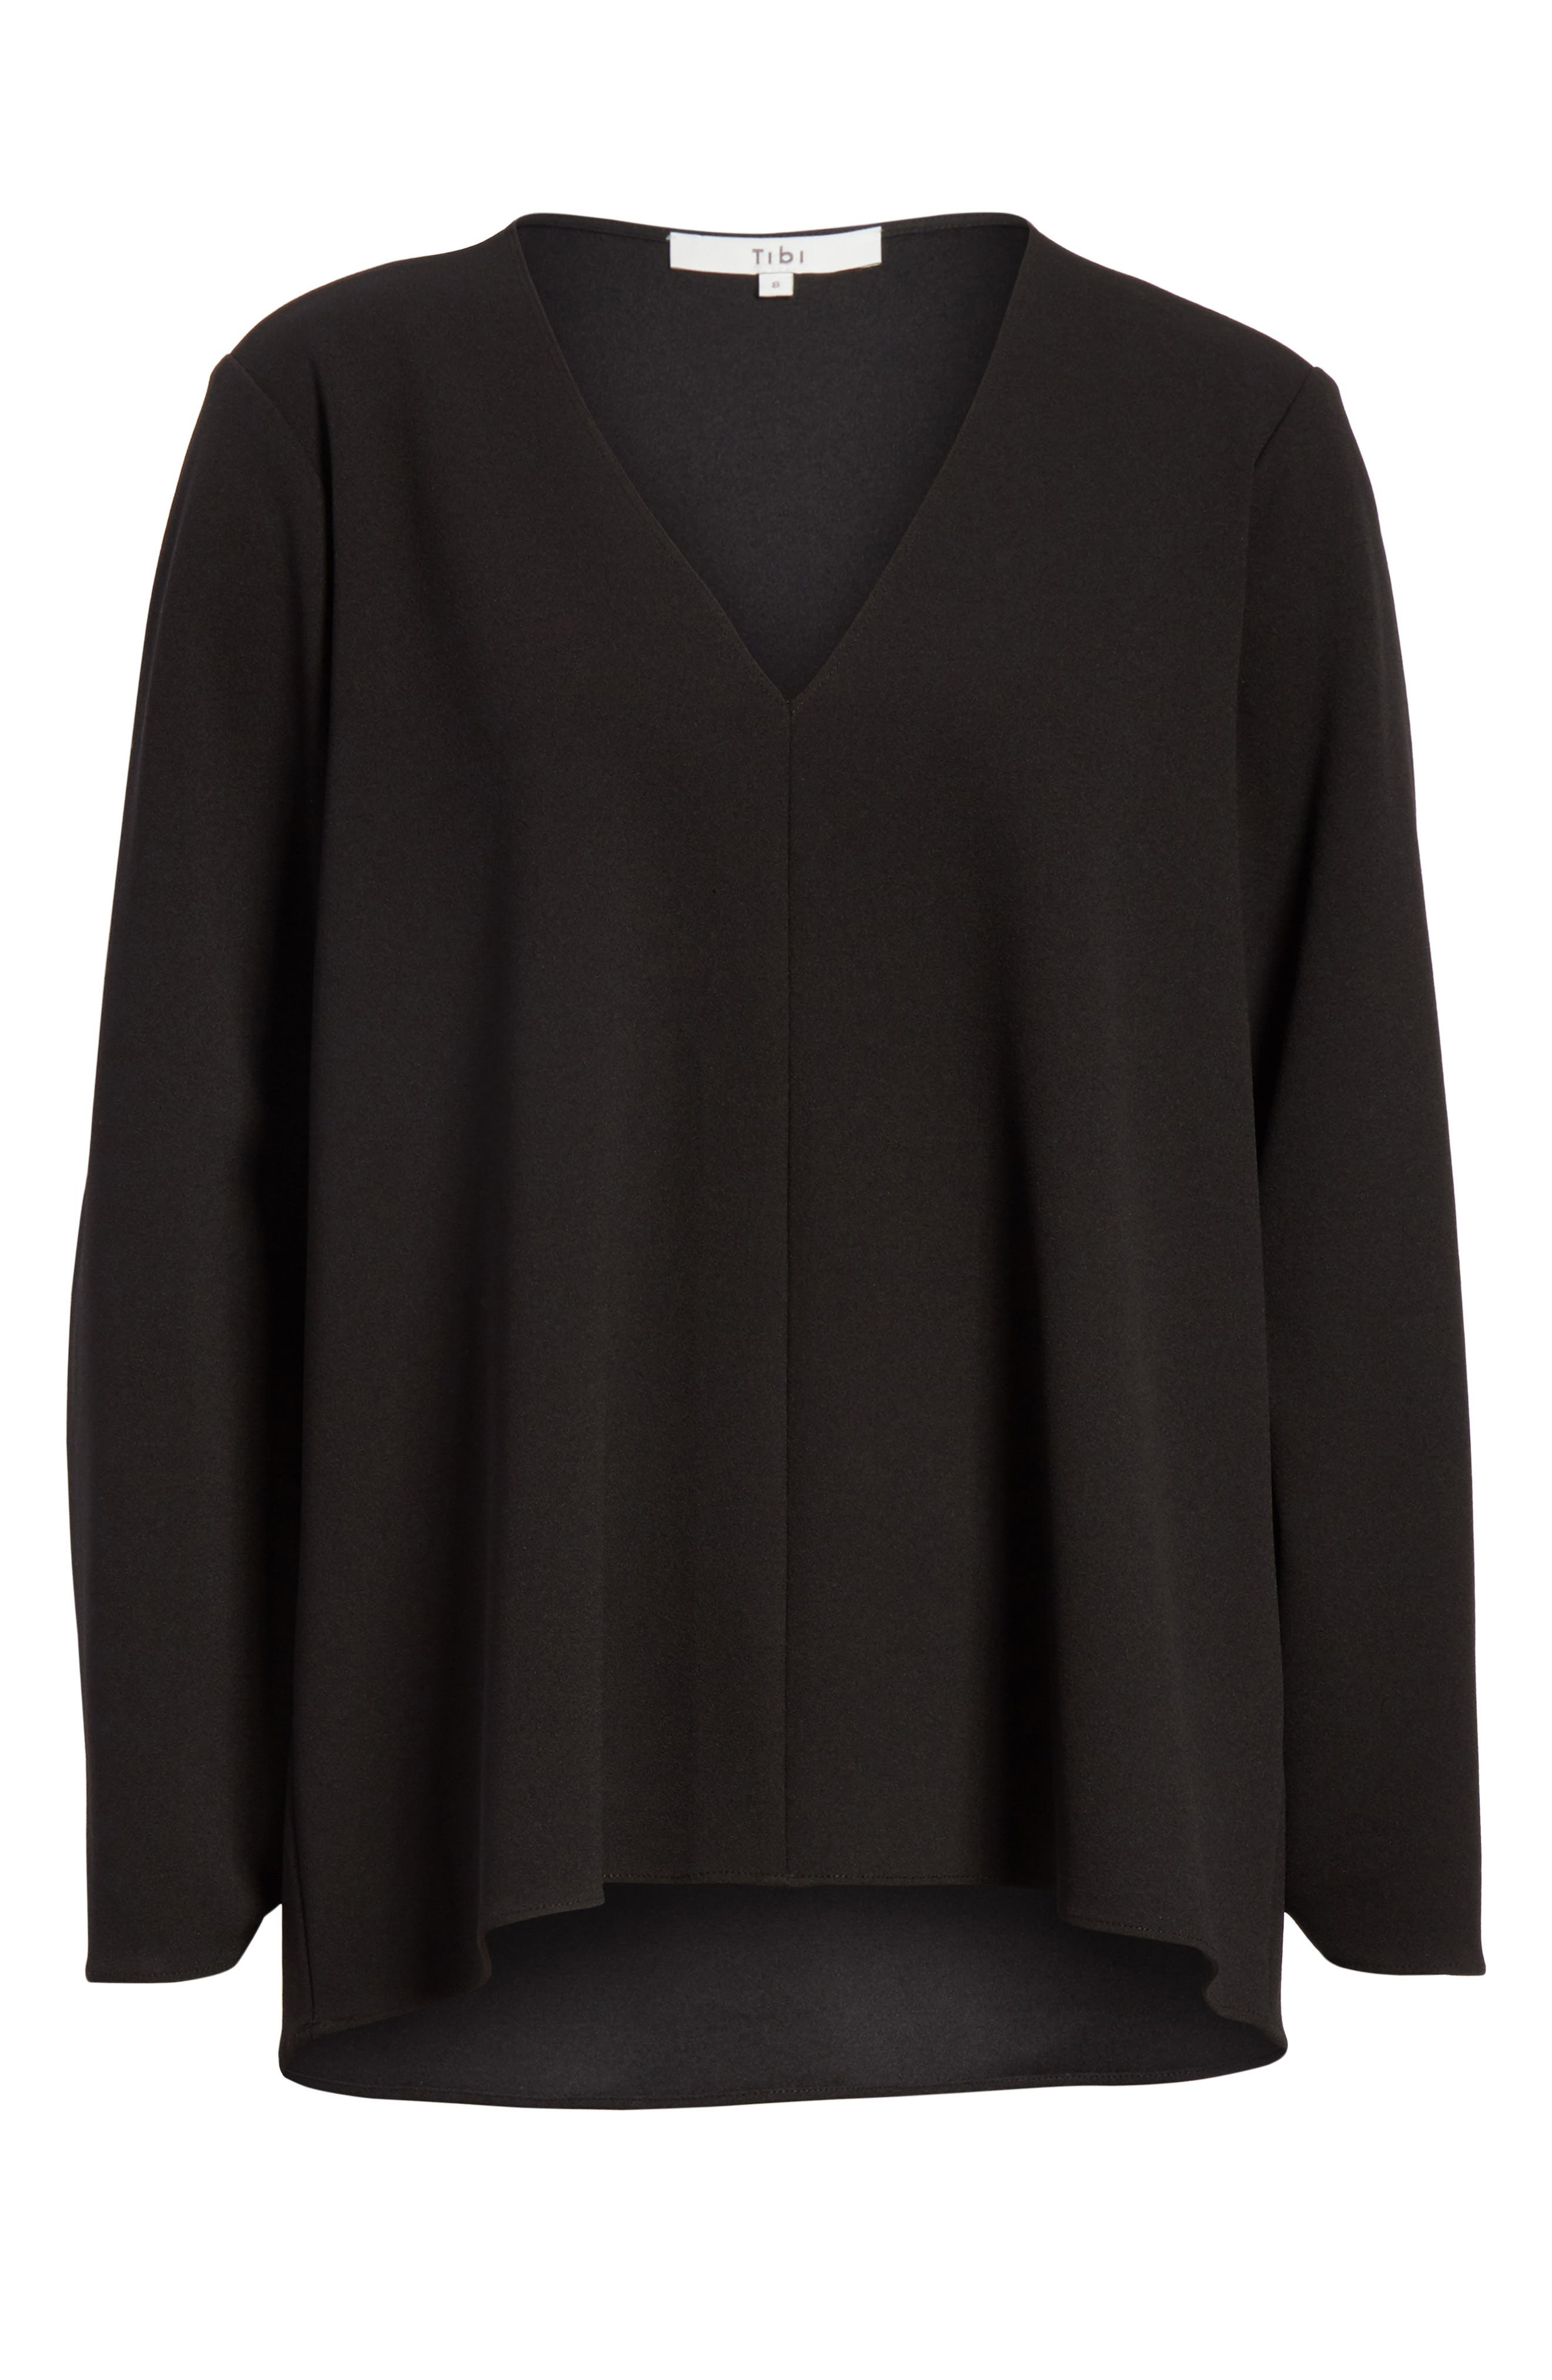 Ruched Sleeve Top,                             Alternate thumbnail 6, color,                             BLACK